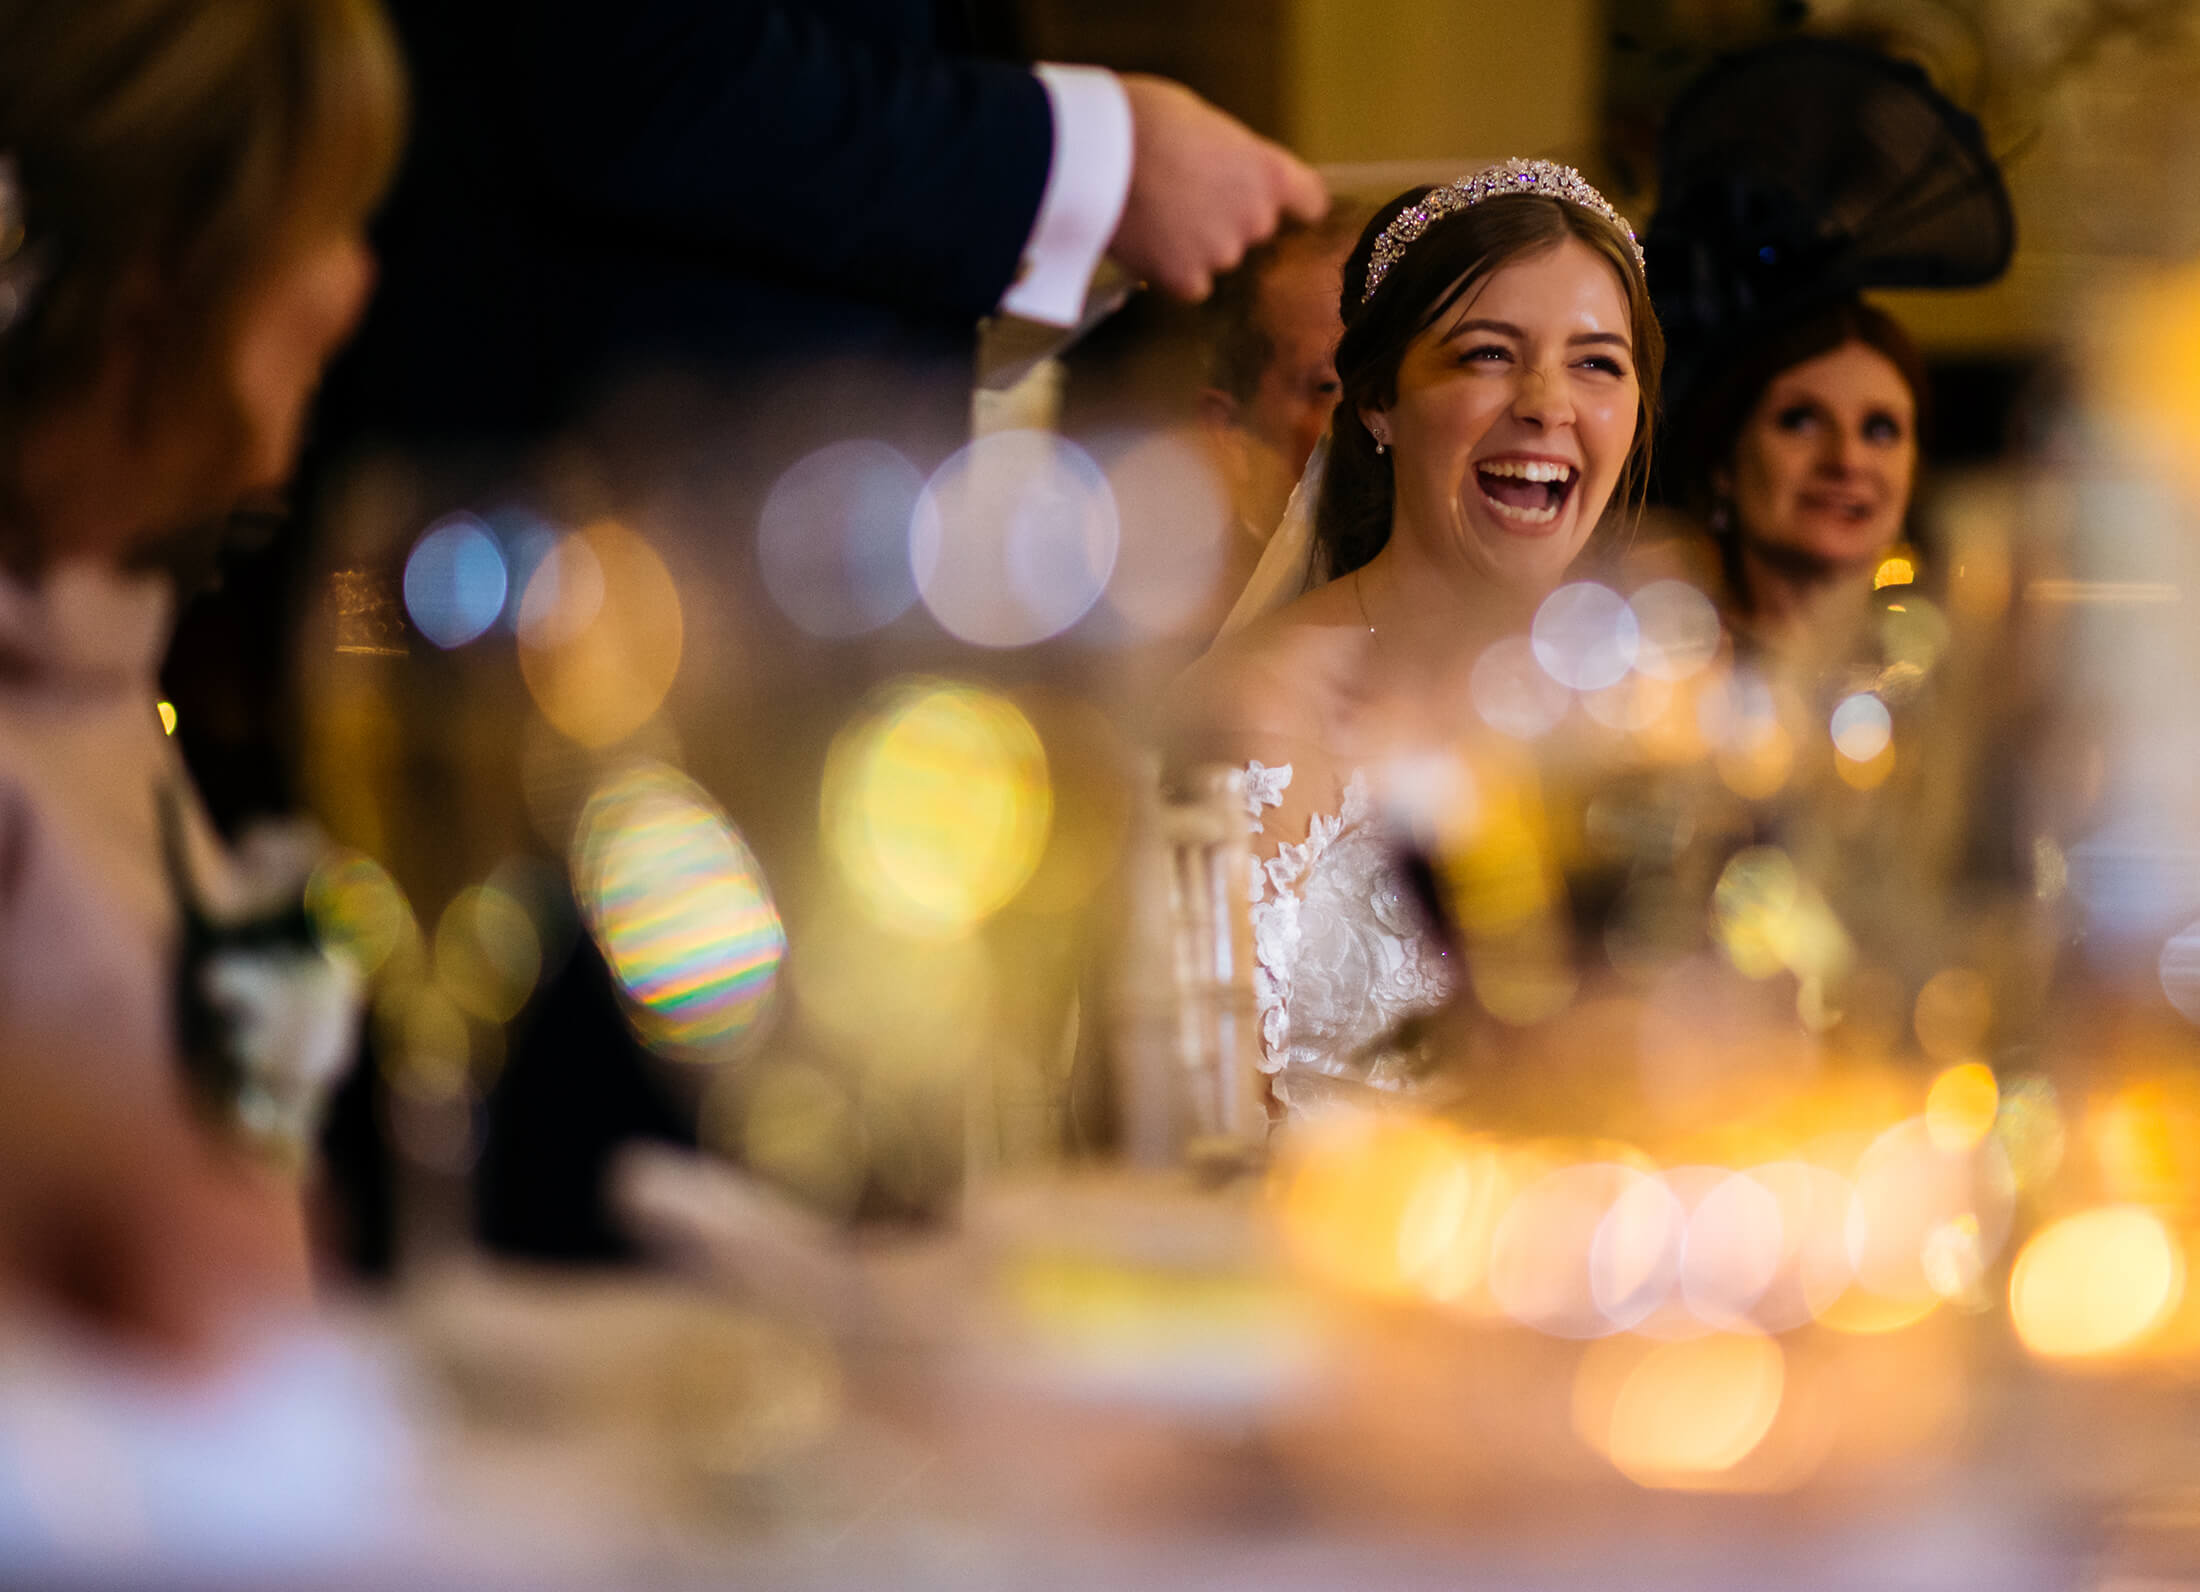 A bride laughs during the speeches at her Peckforton Castle wedding